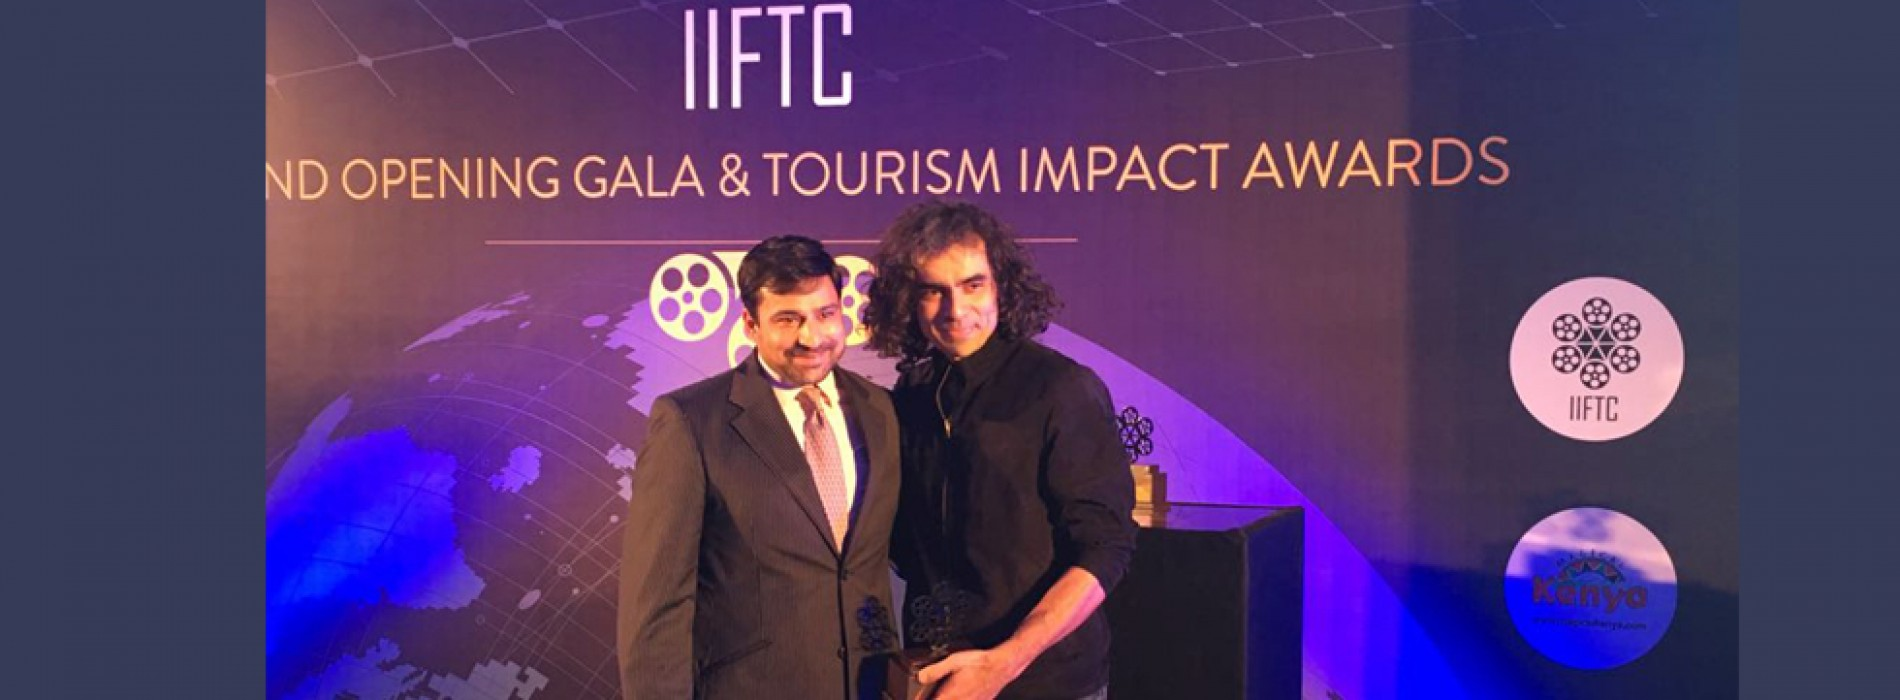 Kenya Tourism Board felicitates film maker Imtiaz Ali with IIFTC Tourism Impact Awards